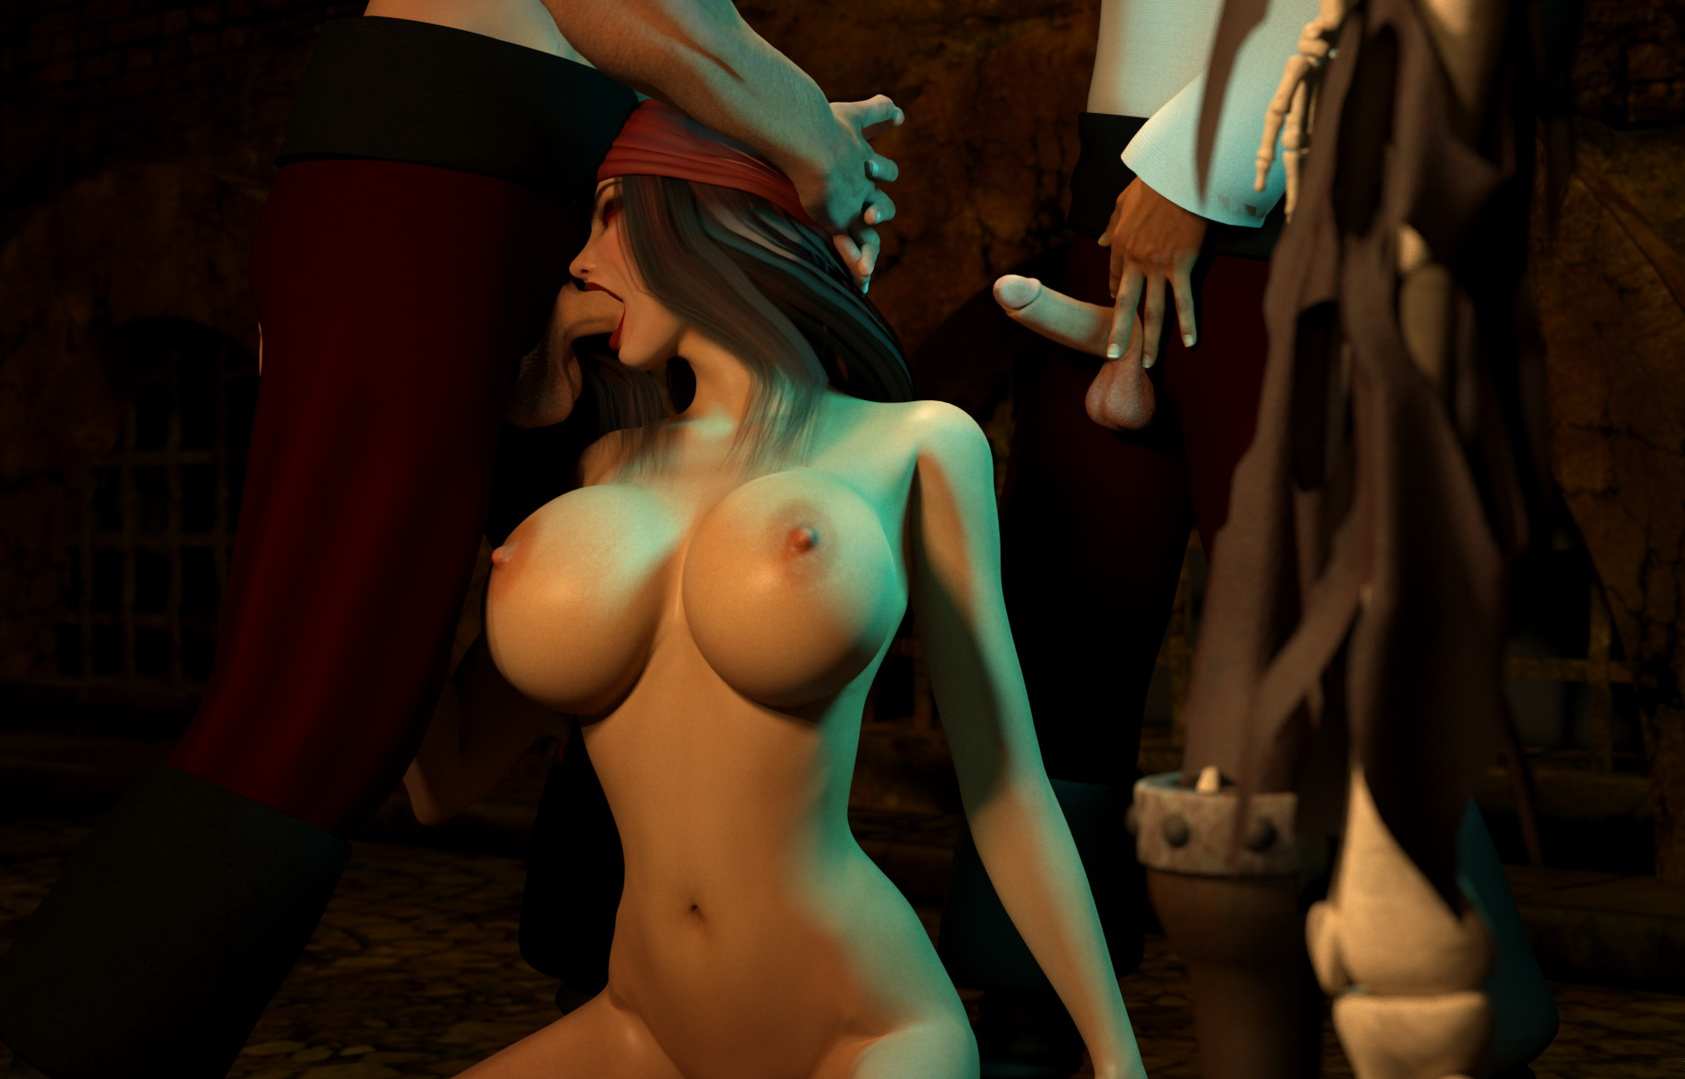 3d animated xxx game download free adult sluts